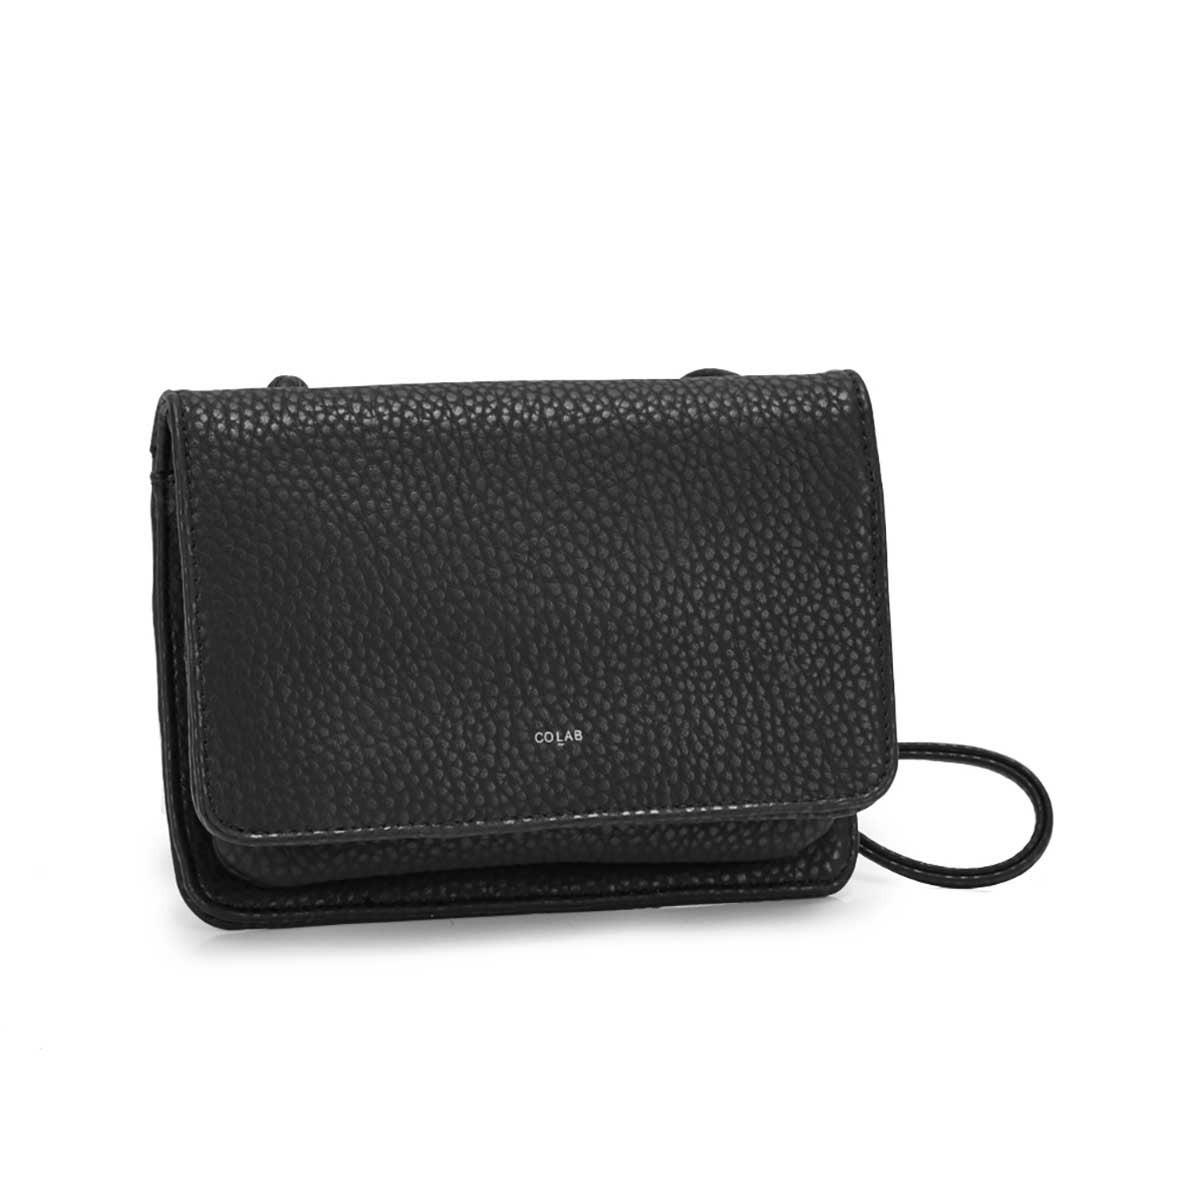 Lds Sydney Organizer blk crossbody bag